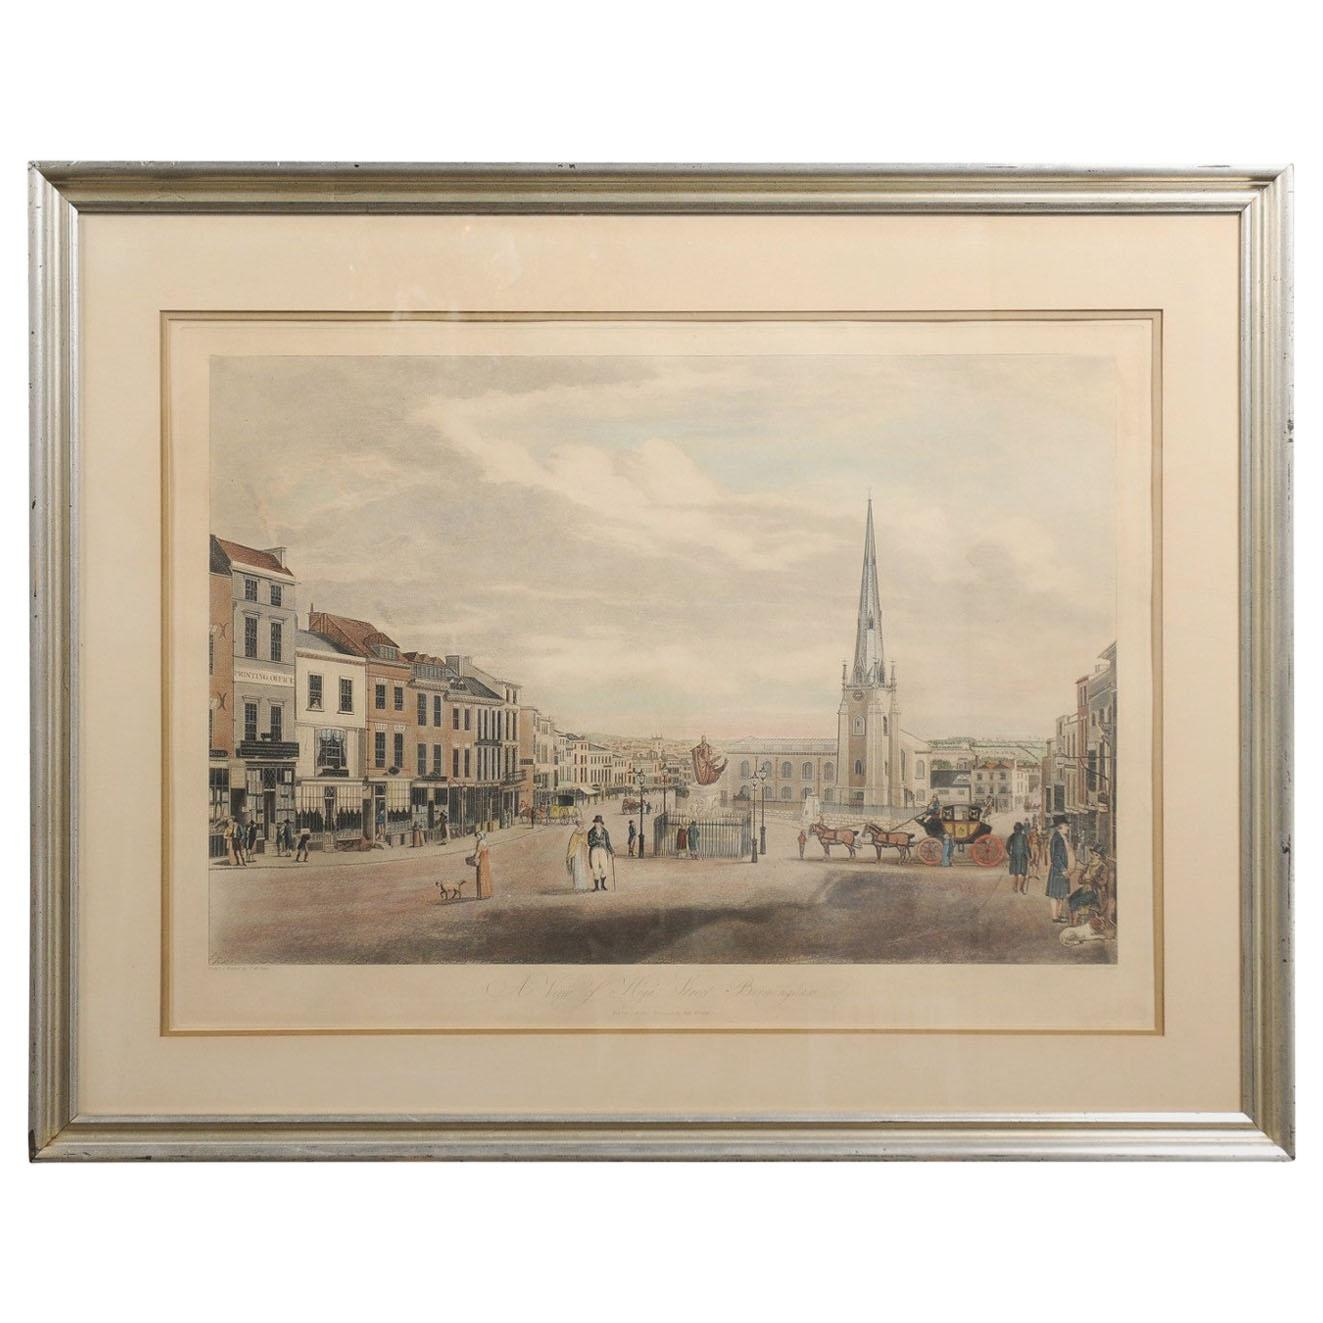 View of High Street Birmingham, 1810s Framed Lithograph Signed T. Hollins